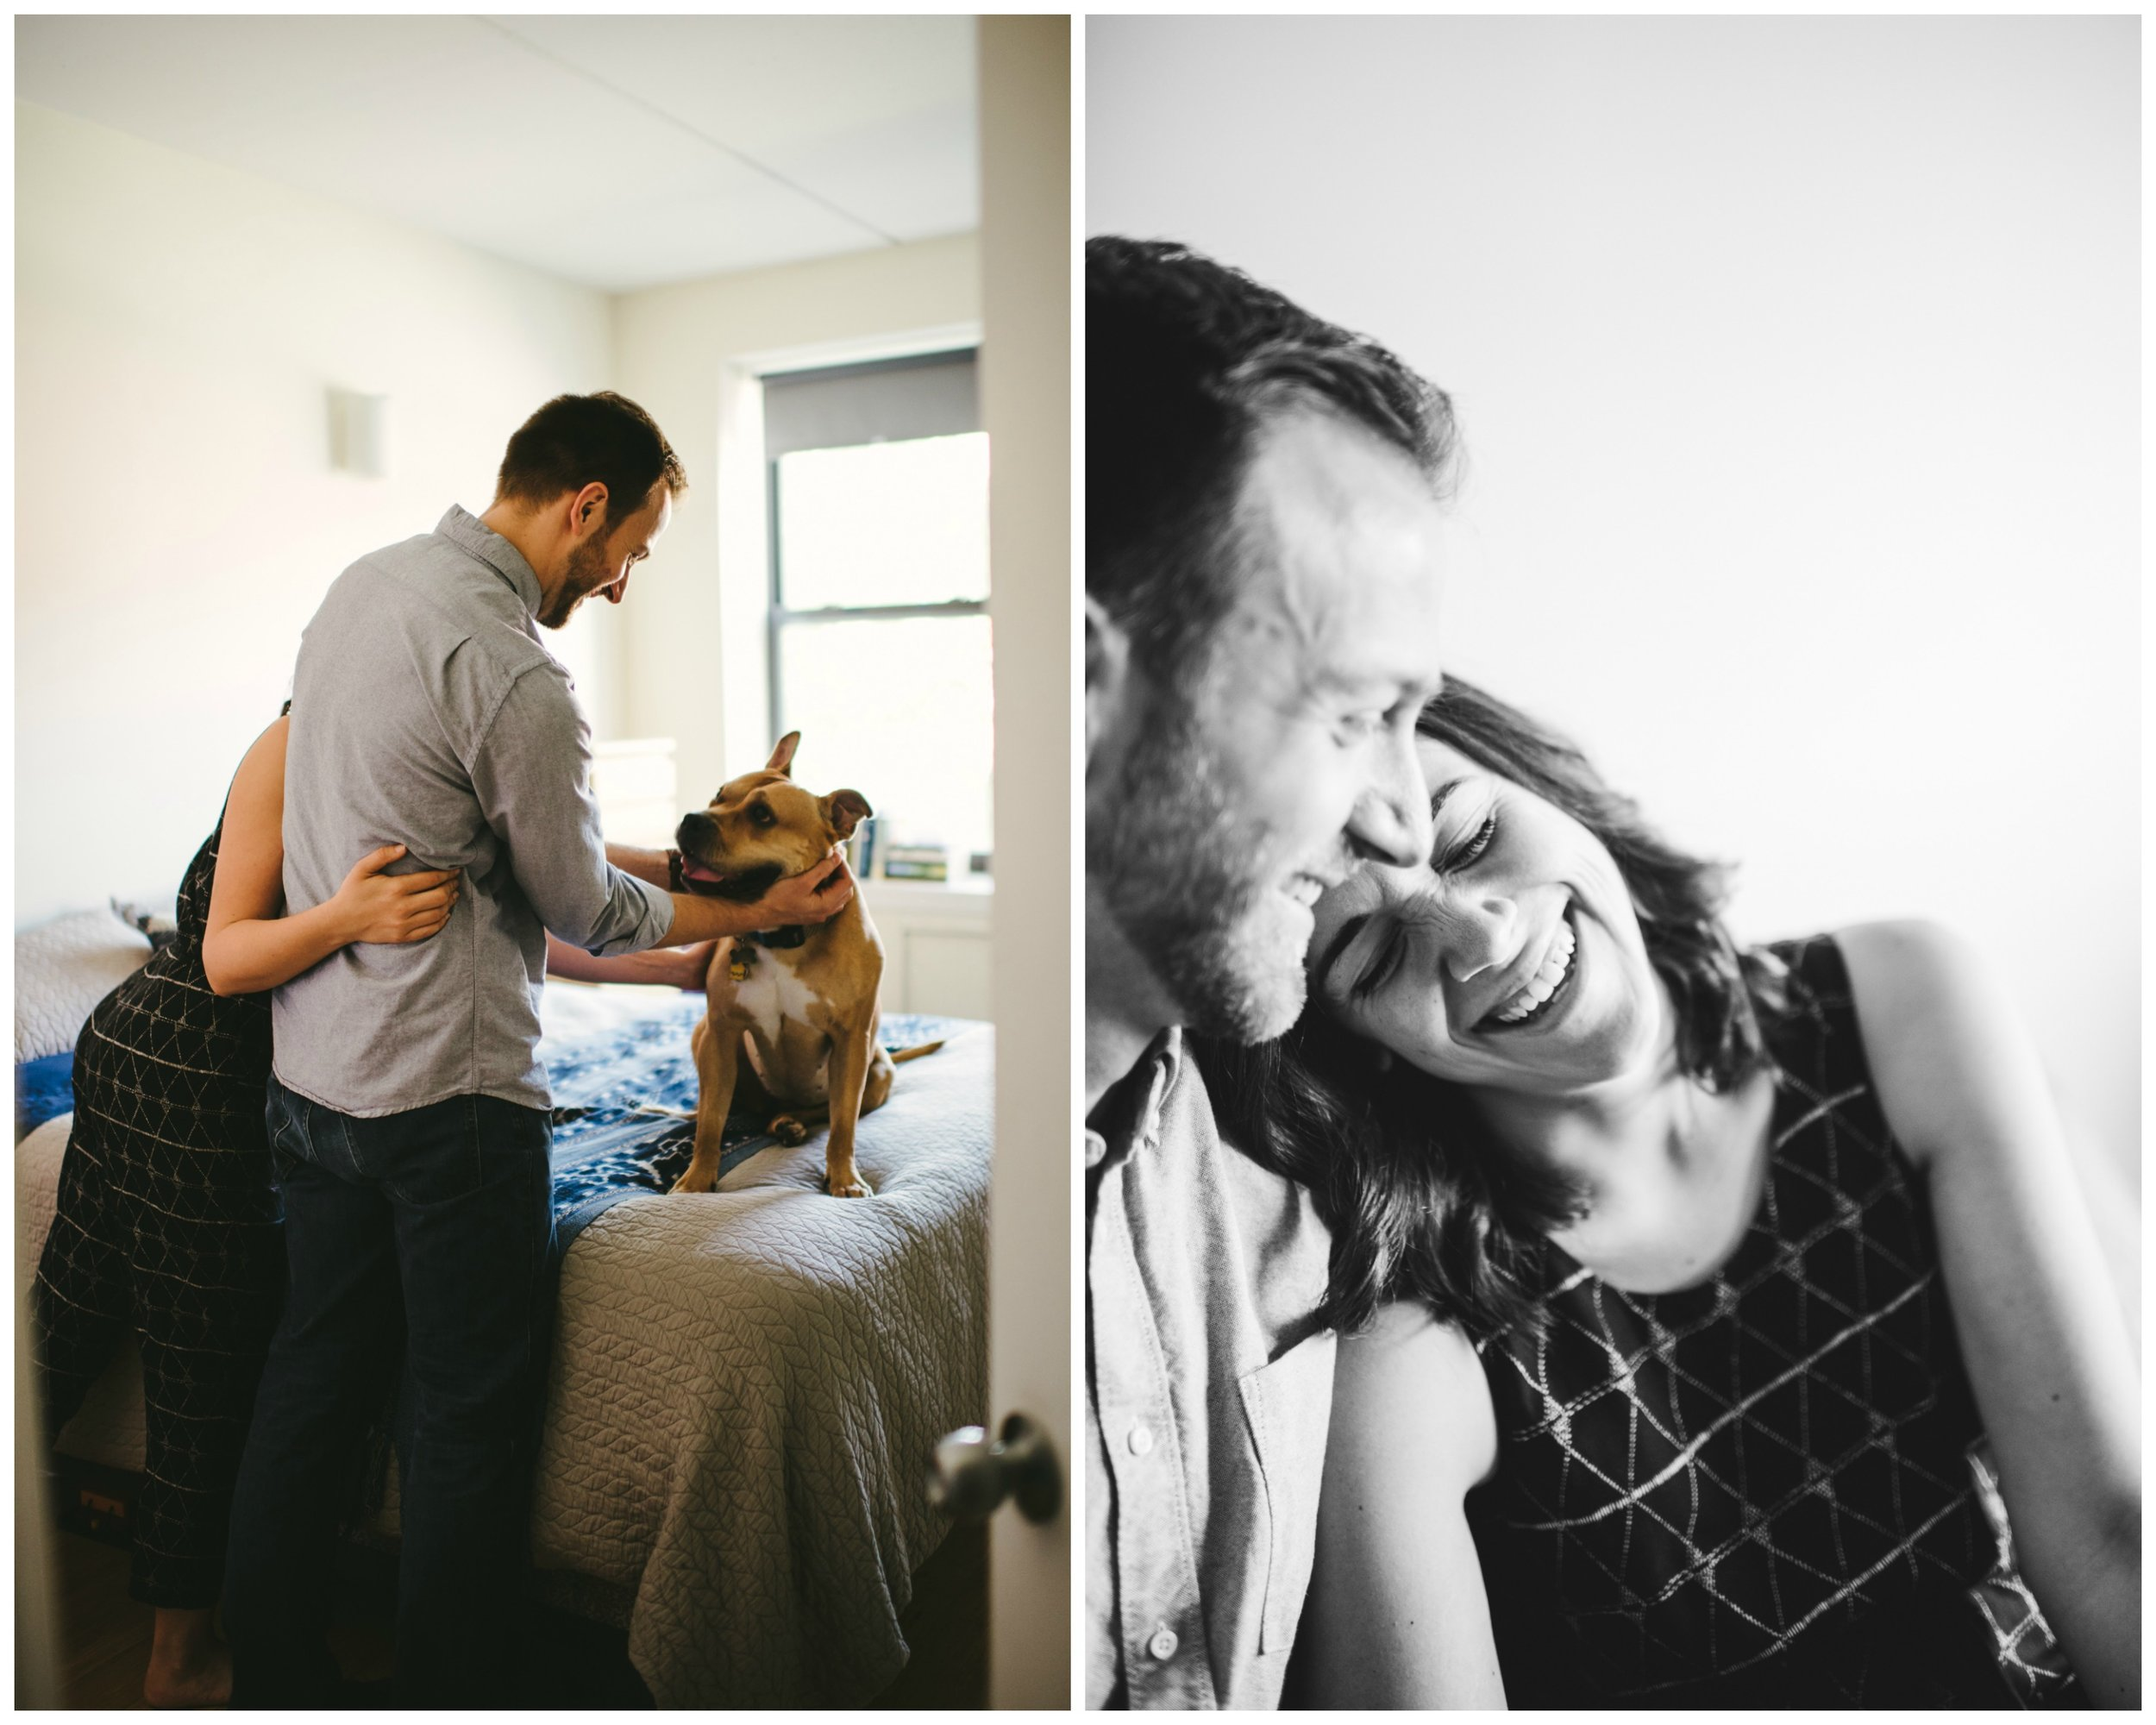 IN HOME BROOKLYN ENGAGEMENT SESSION - INTIMATE WEDDING PHOTOGRAPHER - TWOTWENTY by CHI-CHI AGBIM 2.jpg